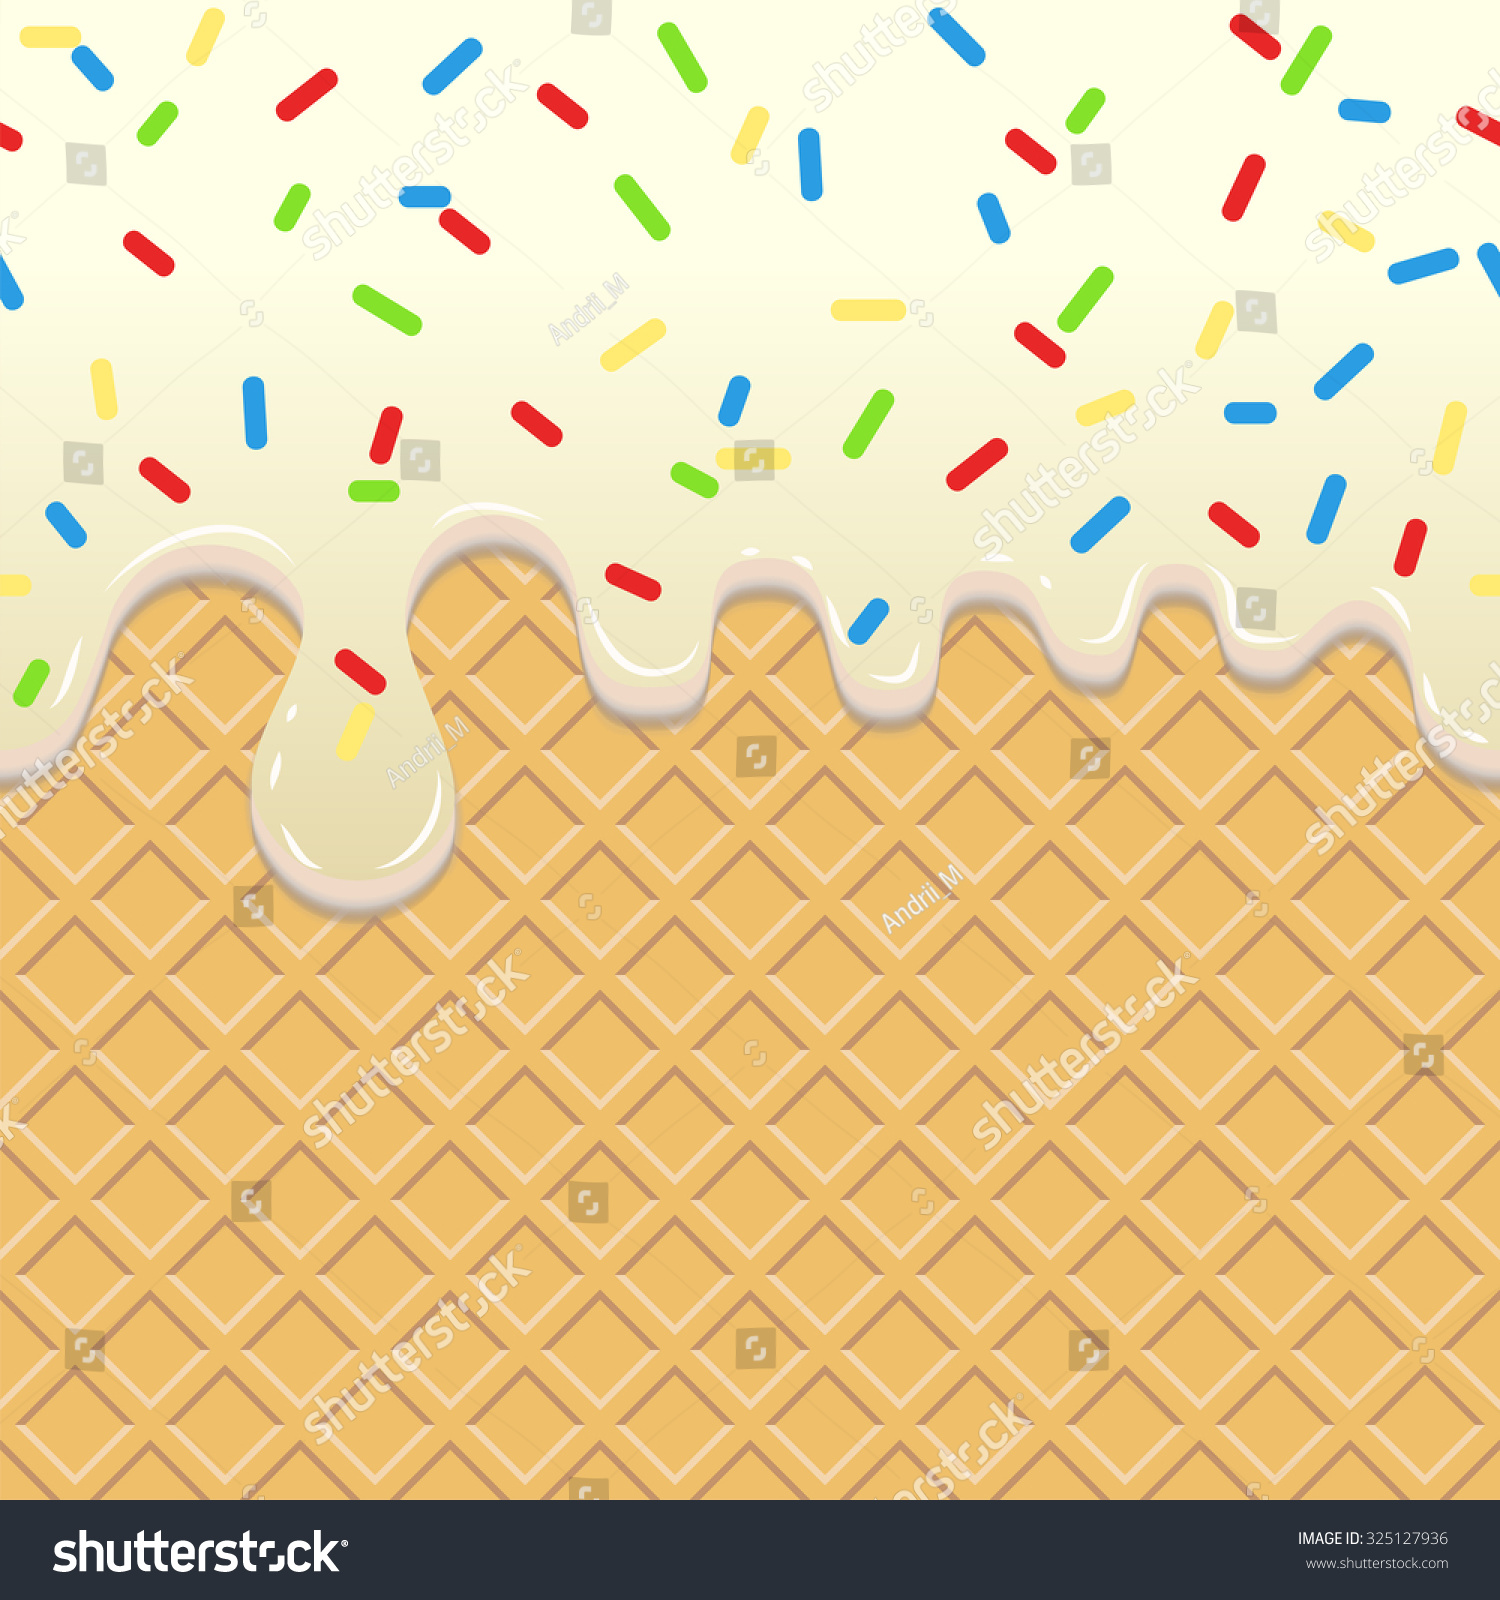 Seamless Ice Cream Background: Flowing Ice Cream Seamless Food Background Stock Vector